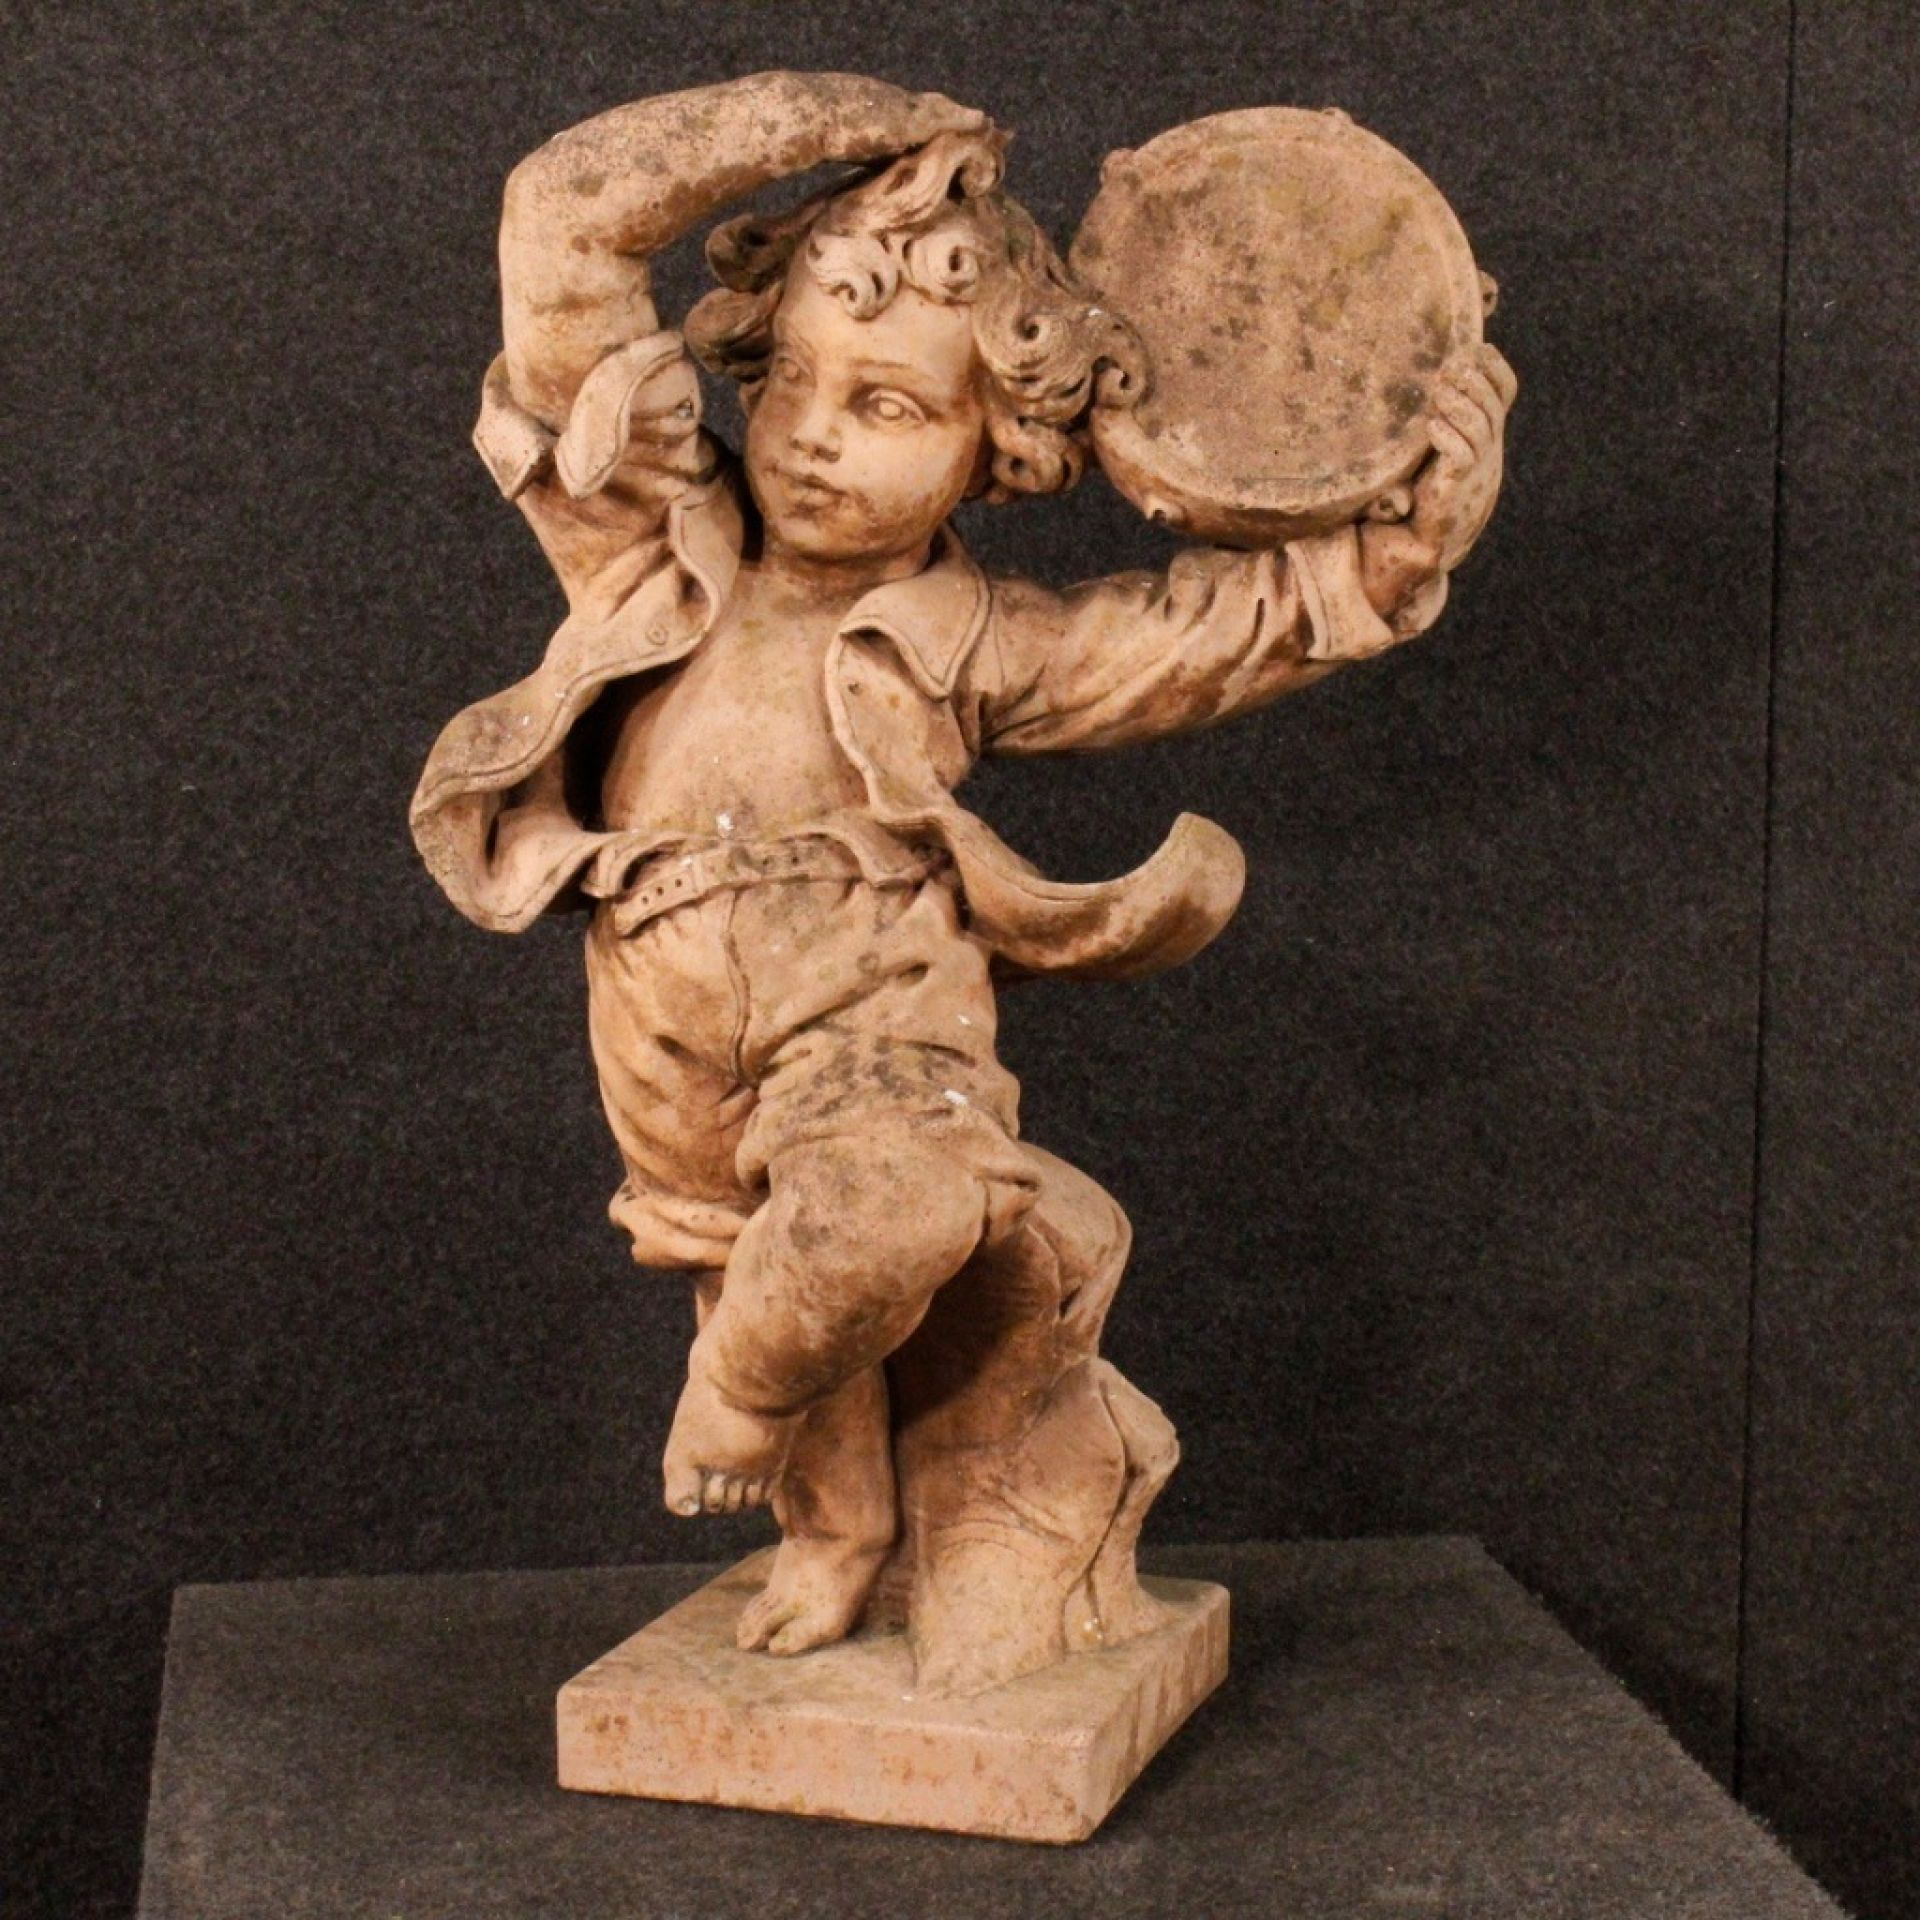 20th Century Cement French Dancing Child With Tambourine Sculpture, 1980